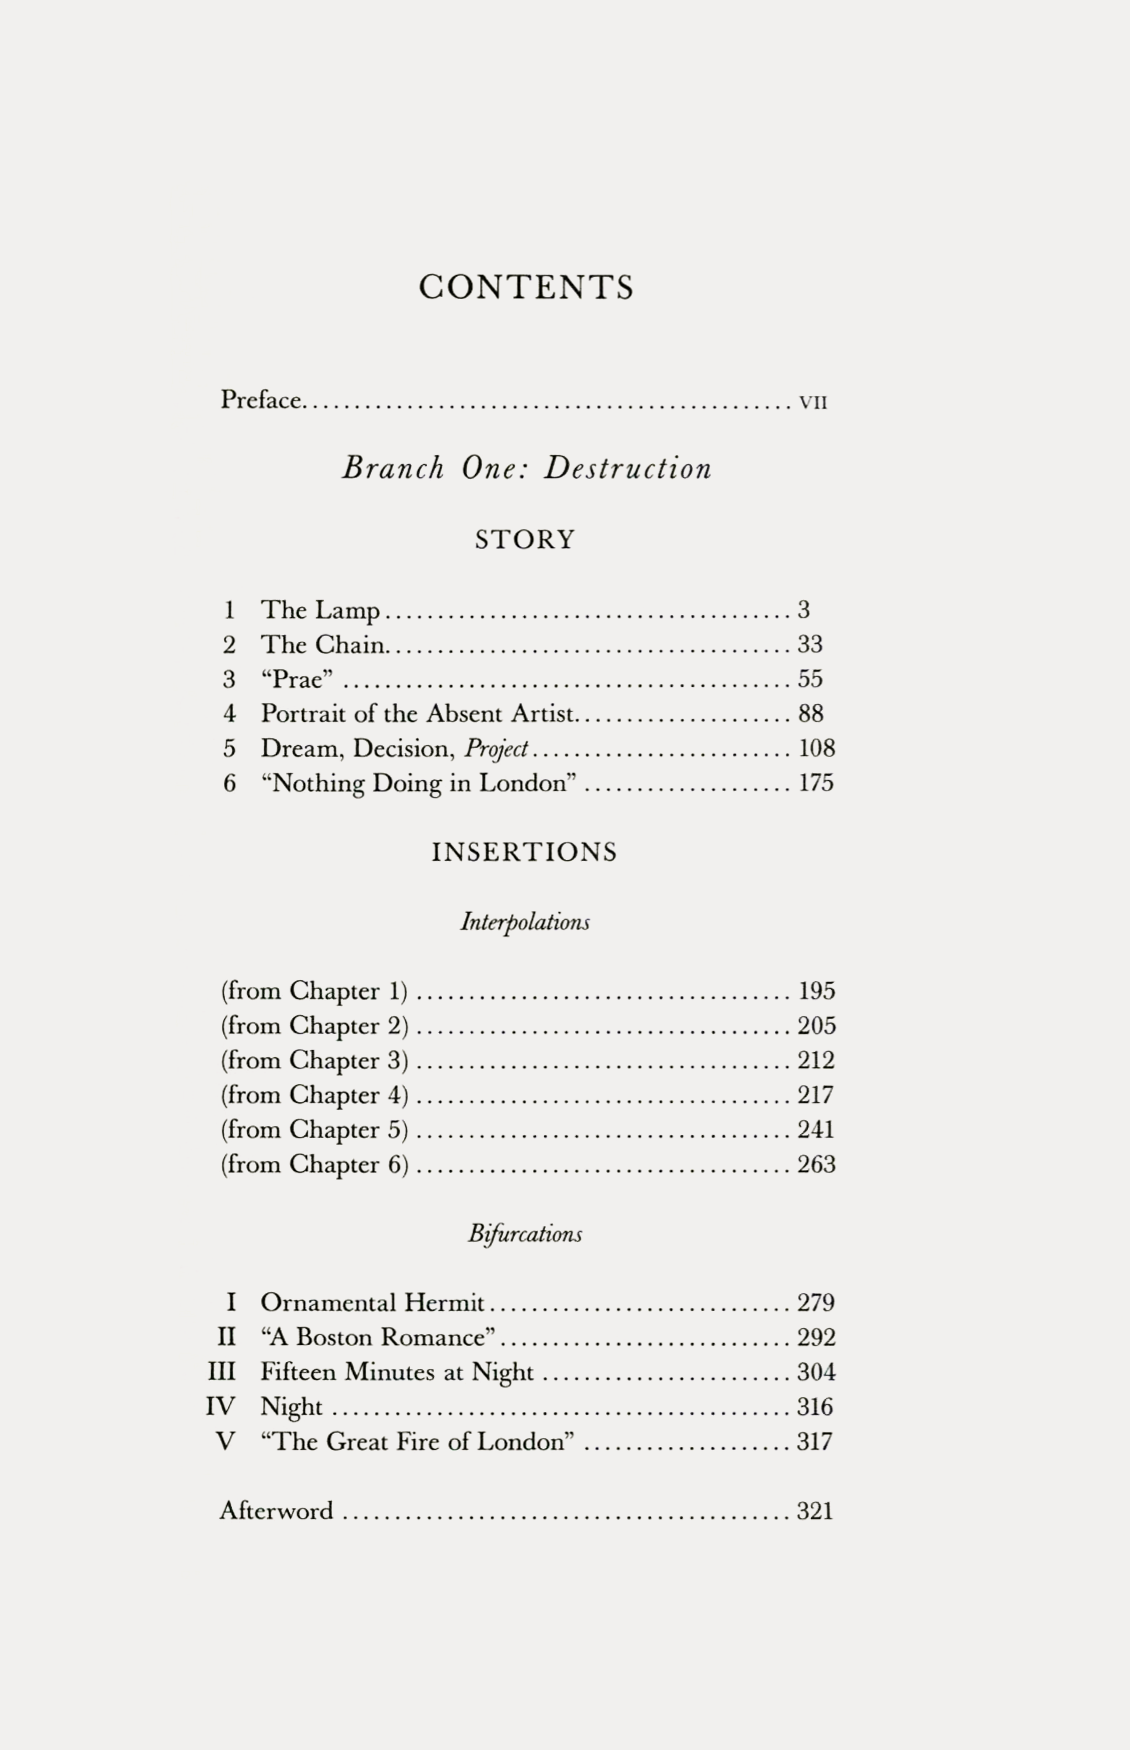 Contents from The Great Fire of London. A Story with Interpolations and Bifurcations, by Jacques Roubaud, Dalkey Archive Press, 2006